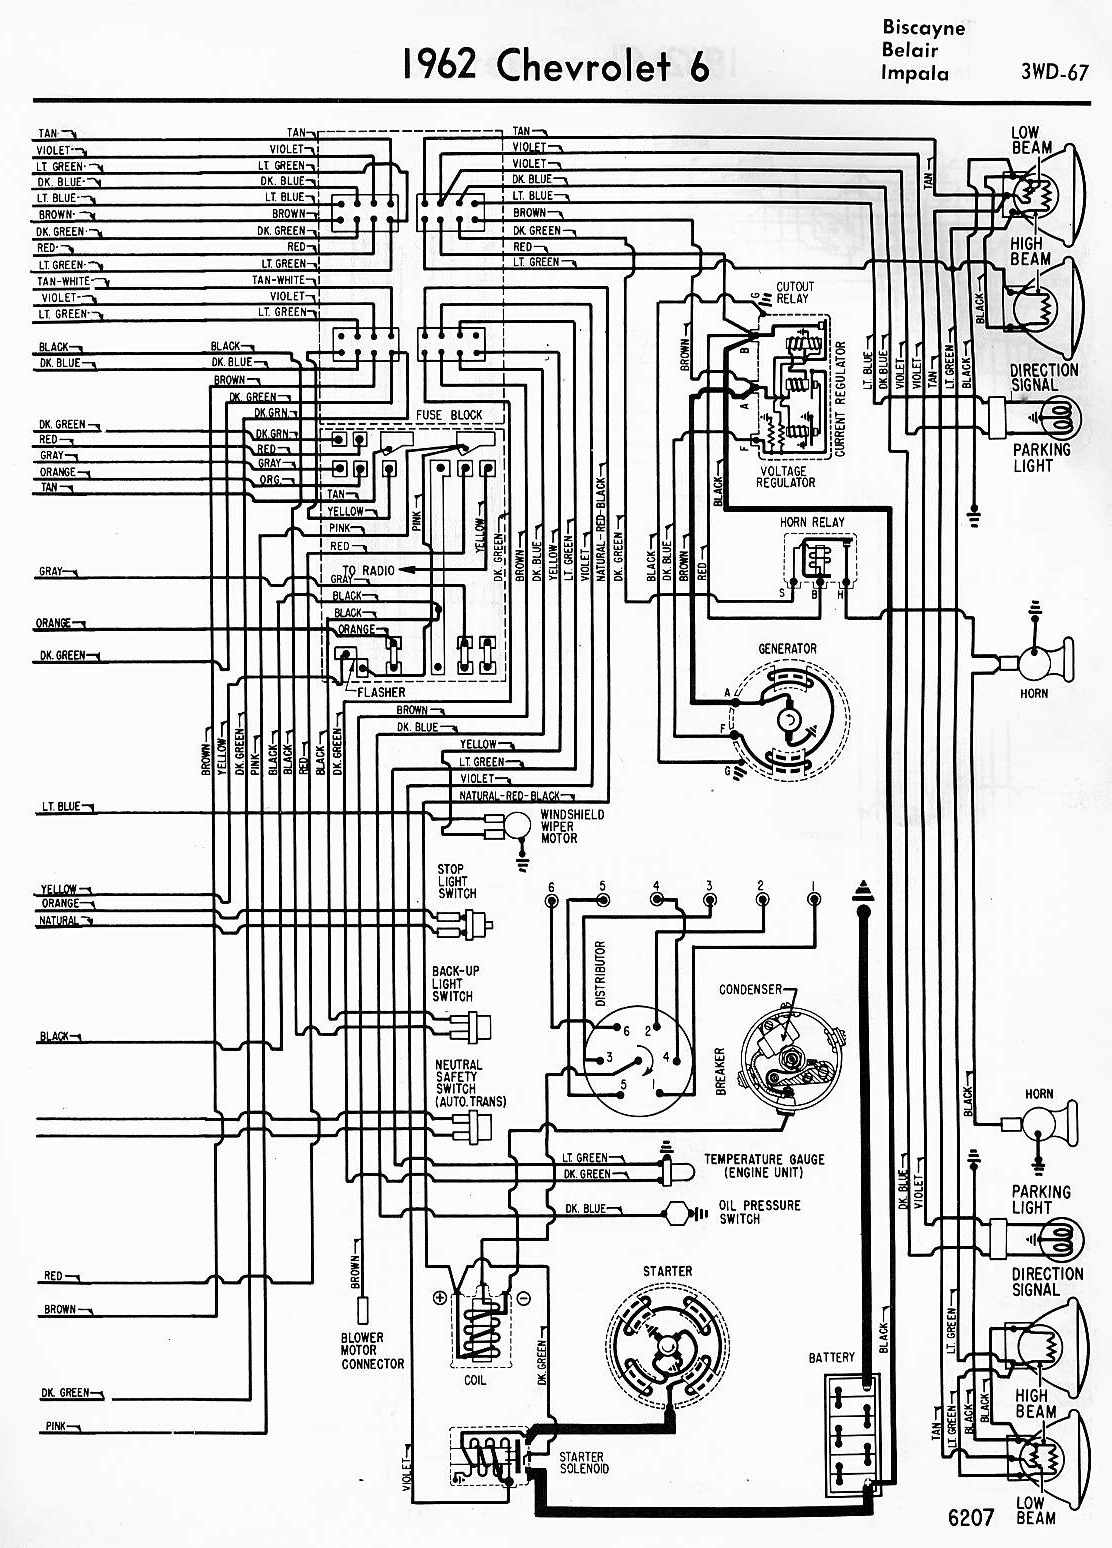 Electrical+Wiring+Diagram+Of+1964+Chevrolet+6 2011 impala wiring diagram 2005 impala ignition wiring diagram 1966 impala wiring harness at edmiracle.co